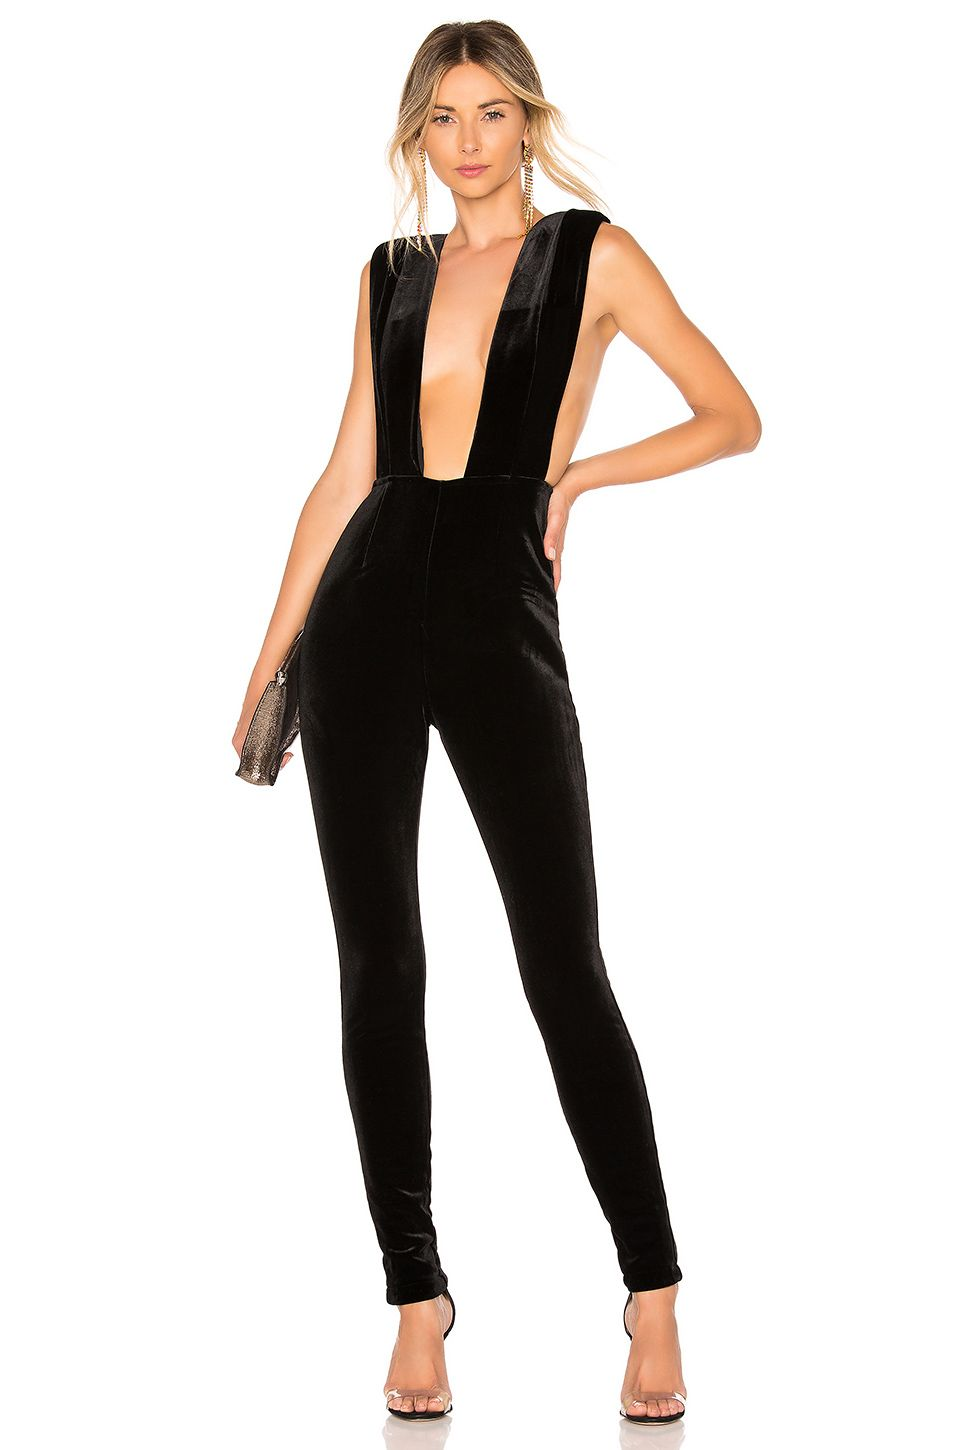 shop-michael-costello-lil-jumpsuit